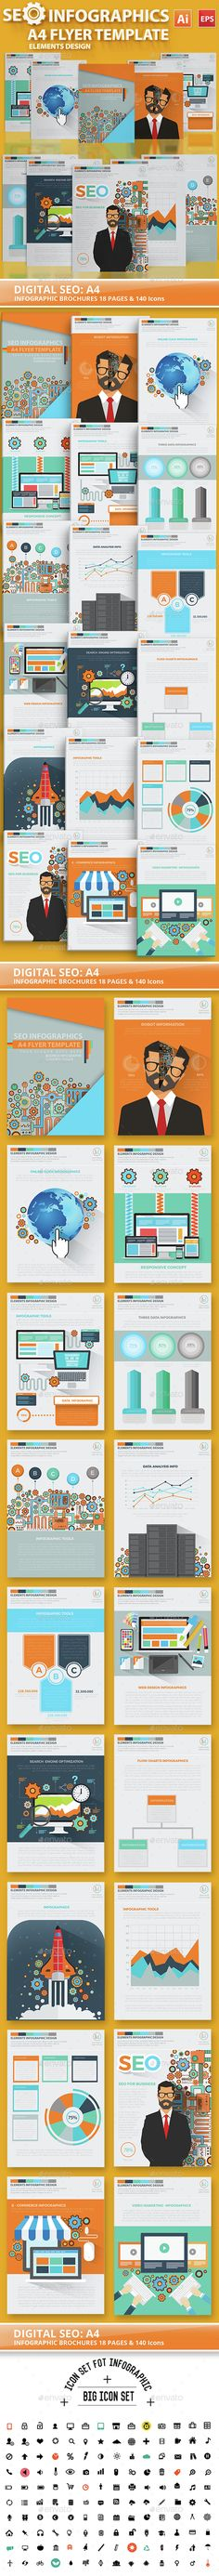 Digital SEO Infographic Elements Design — Vector EPS #social media #icon • Available here → https://graphicriver.net/item/digital-seo-infographic-elements-design/14933158?ref=pxcr